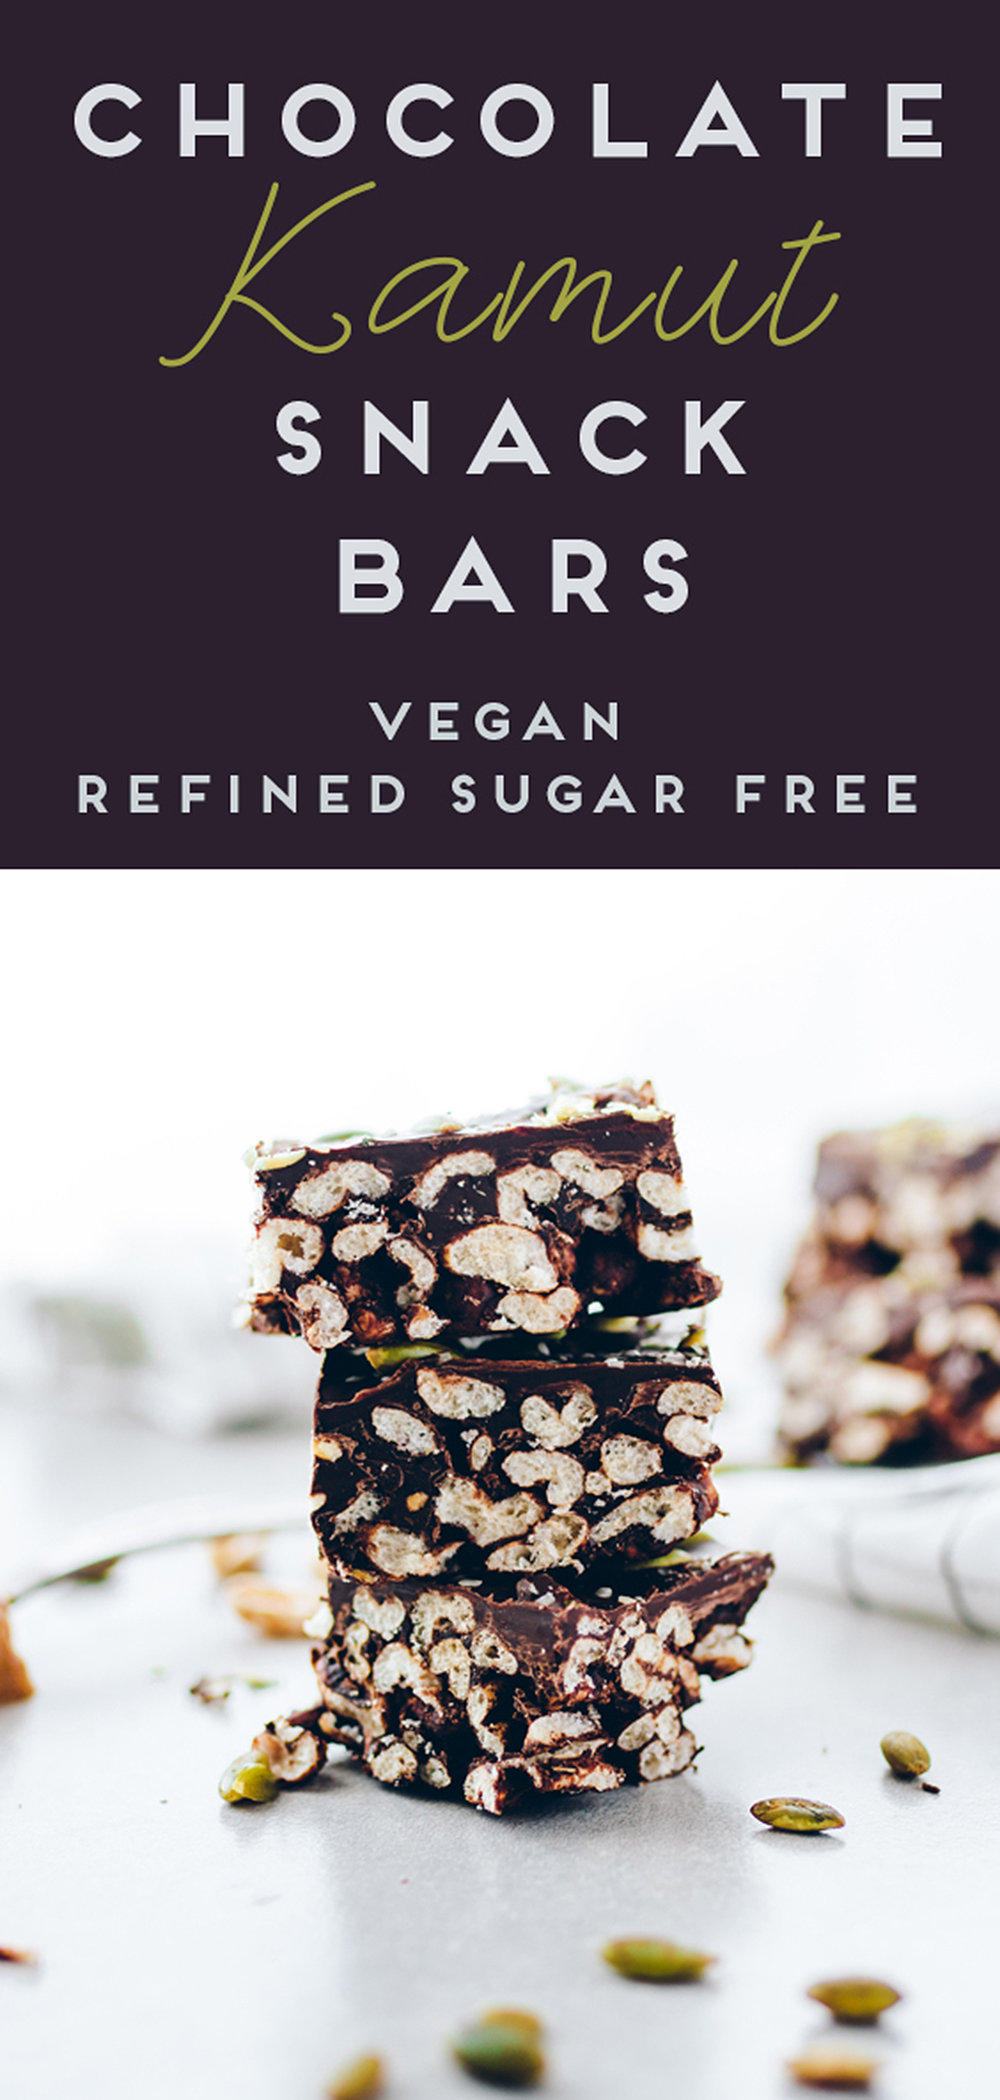 Vegan Chocolate Kamut Snack Bars